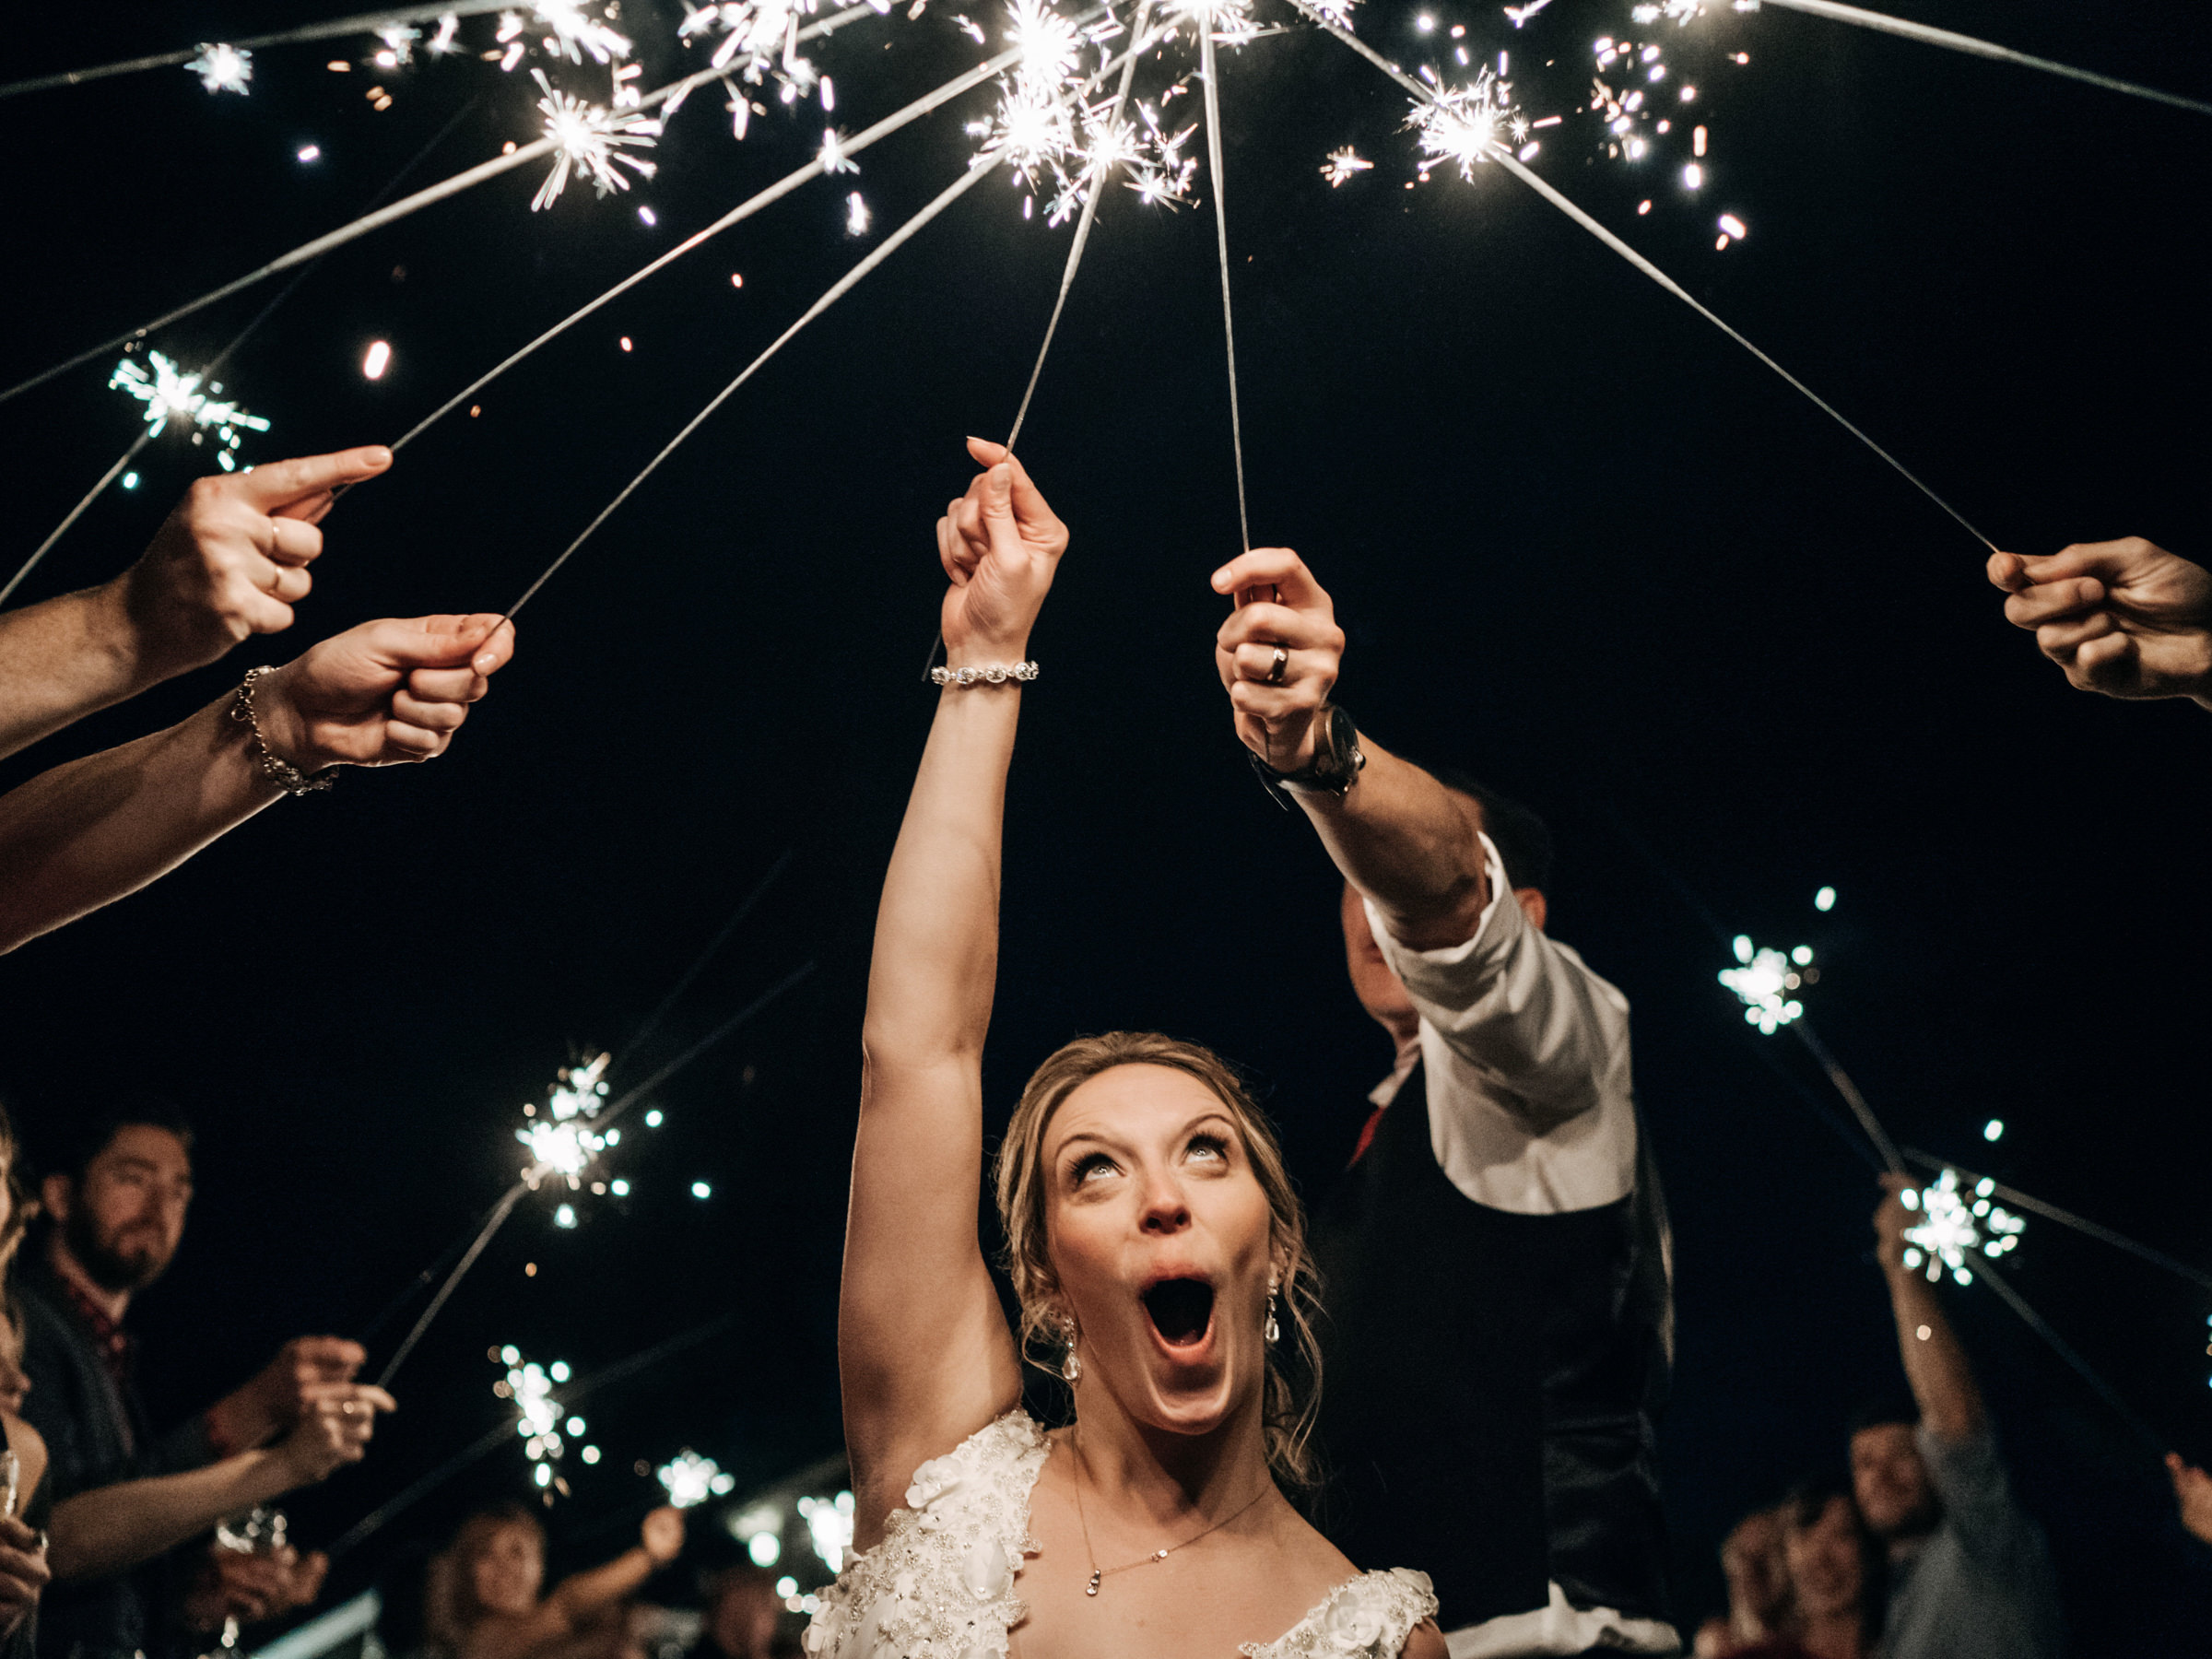 Bride makes funny face during sparklers - photo by Sasha Reiko Photography